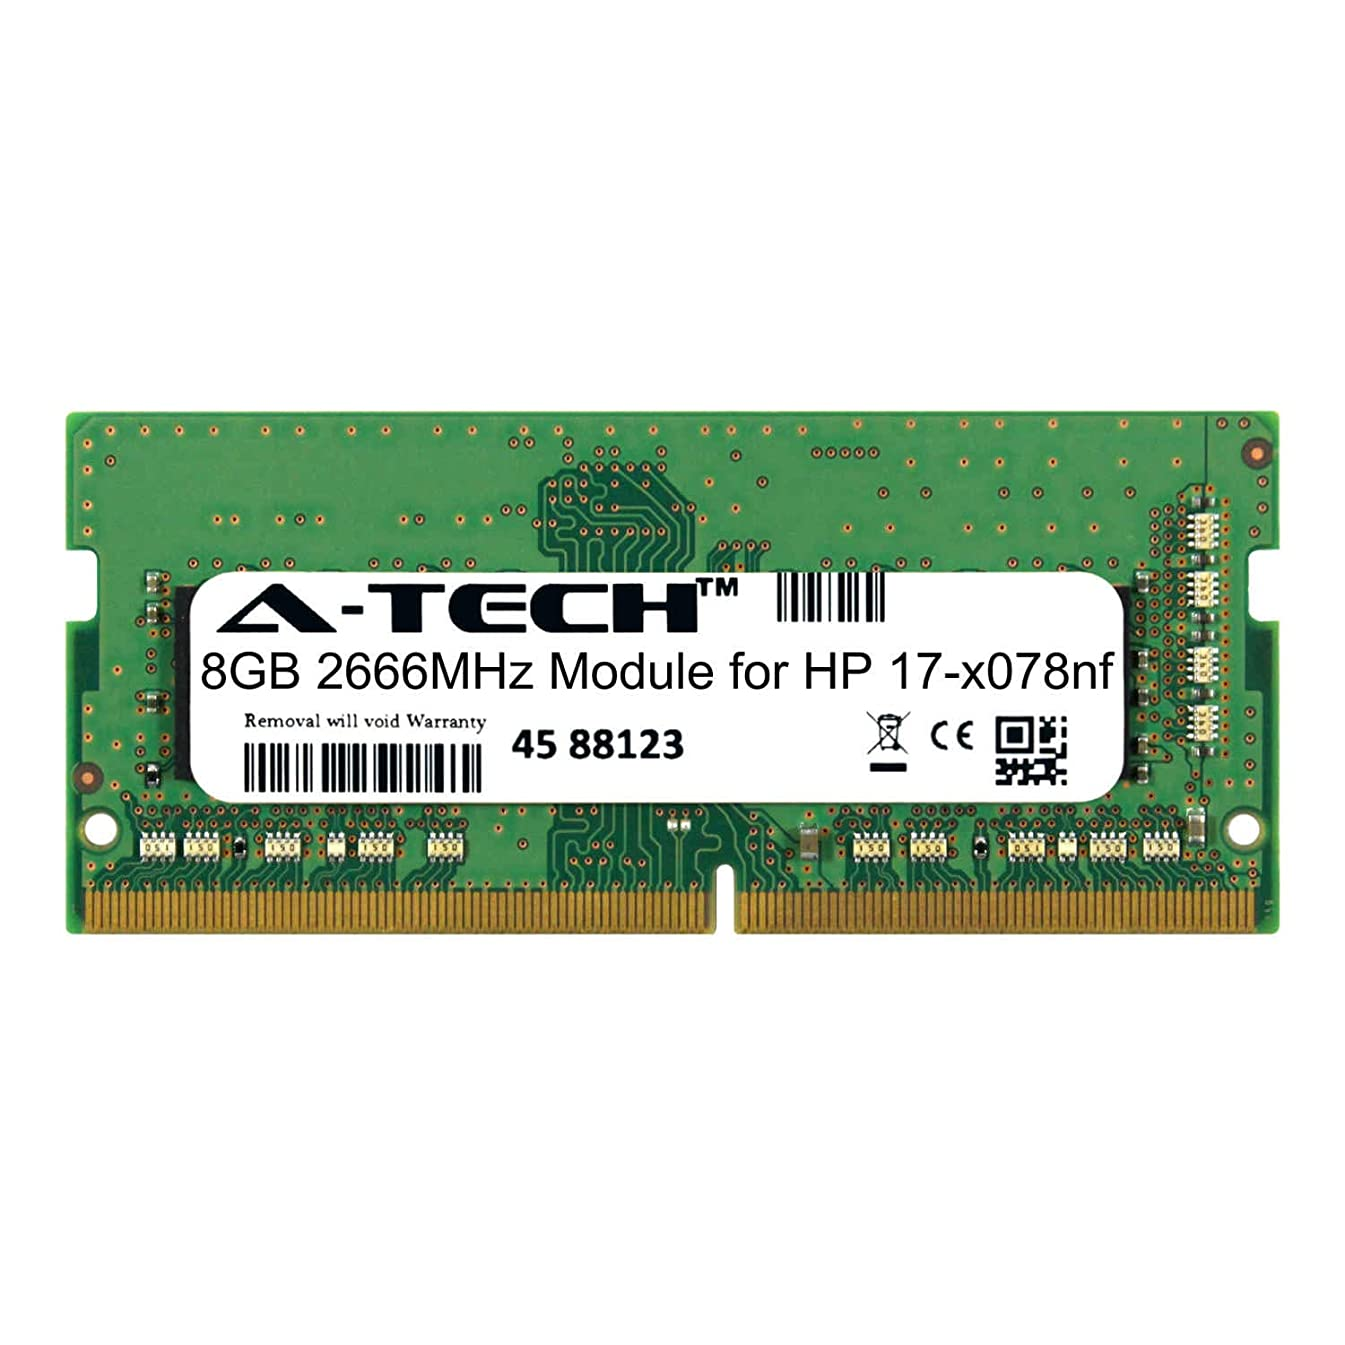 A-Tech 8GB Module for HP 17-x078nf Laptop & Notebook Compatible DDR4 2666Mhz Memory Ram (ATMS382931A25978X1)